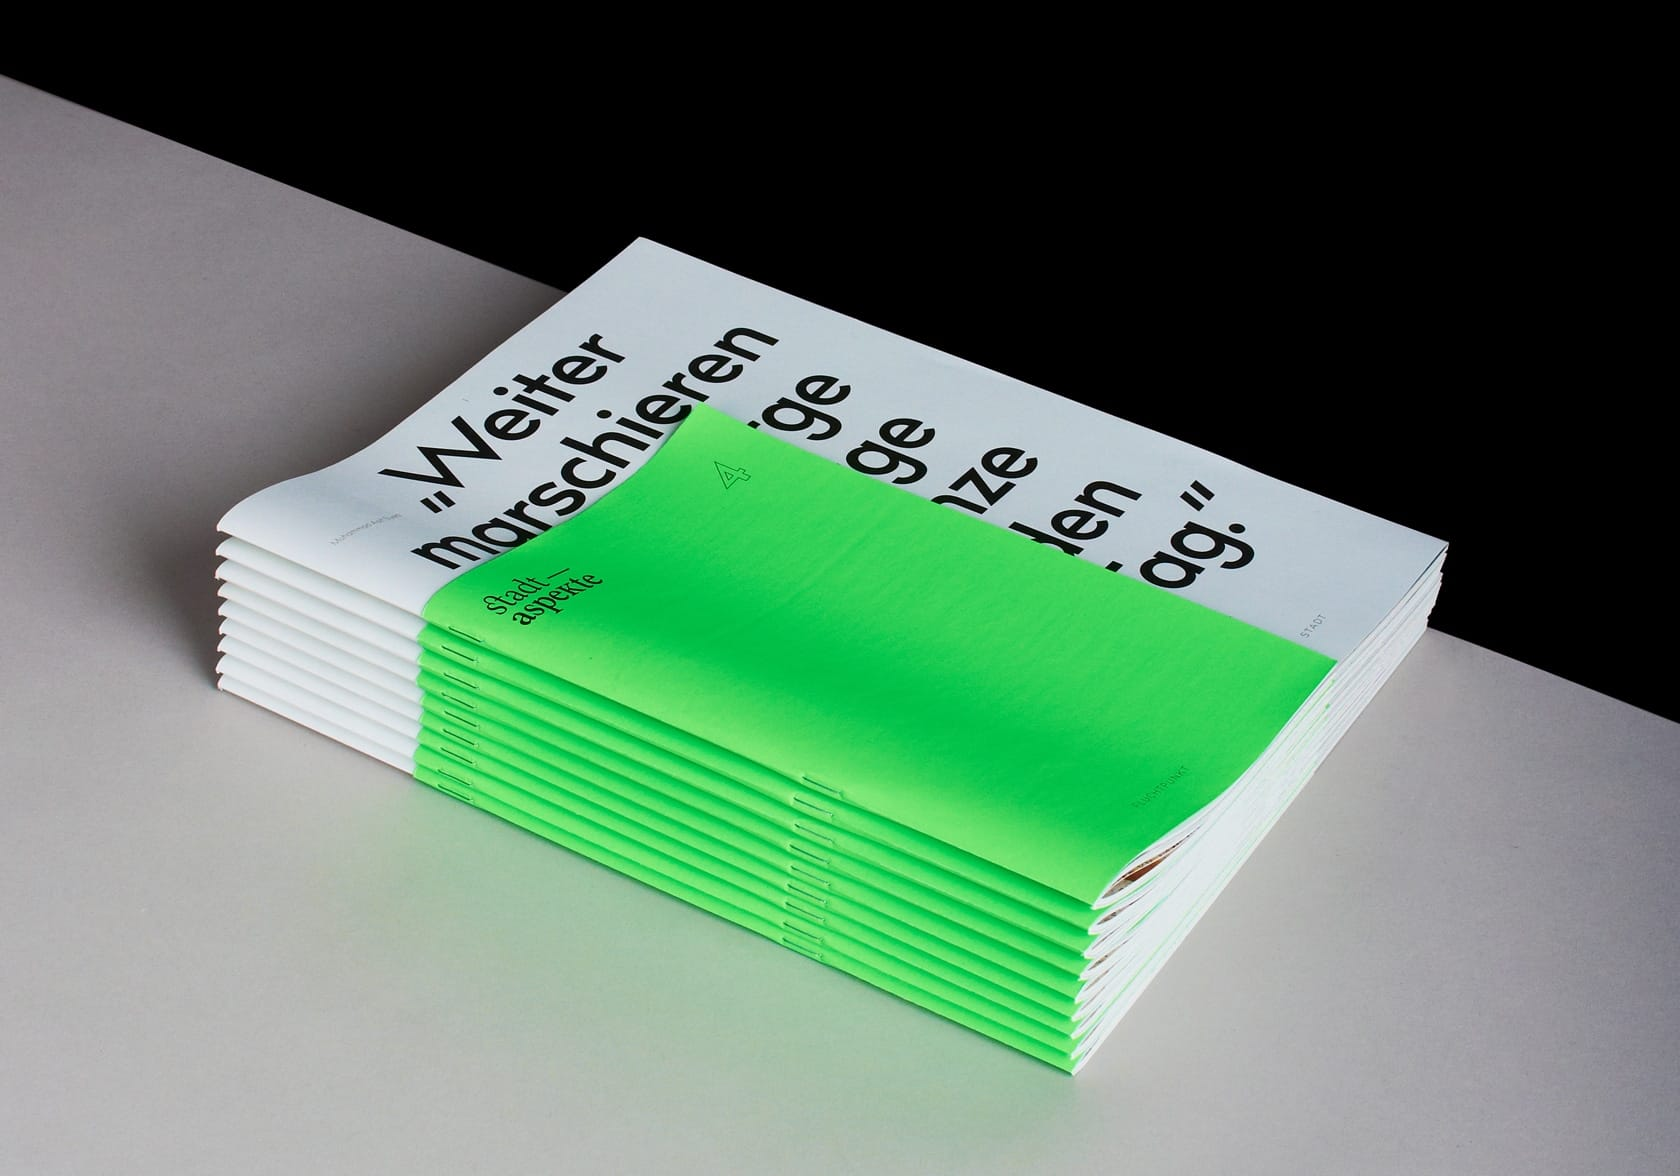 A stack of nine magazines of the 4th issue of Stadaspekte in front of a grey and black background